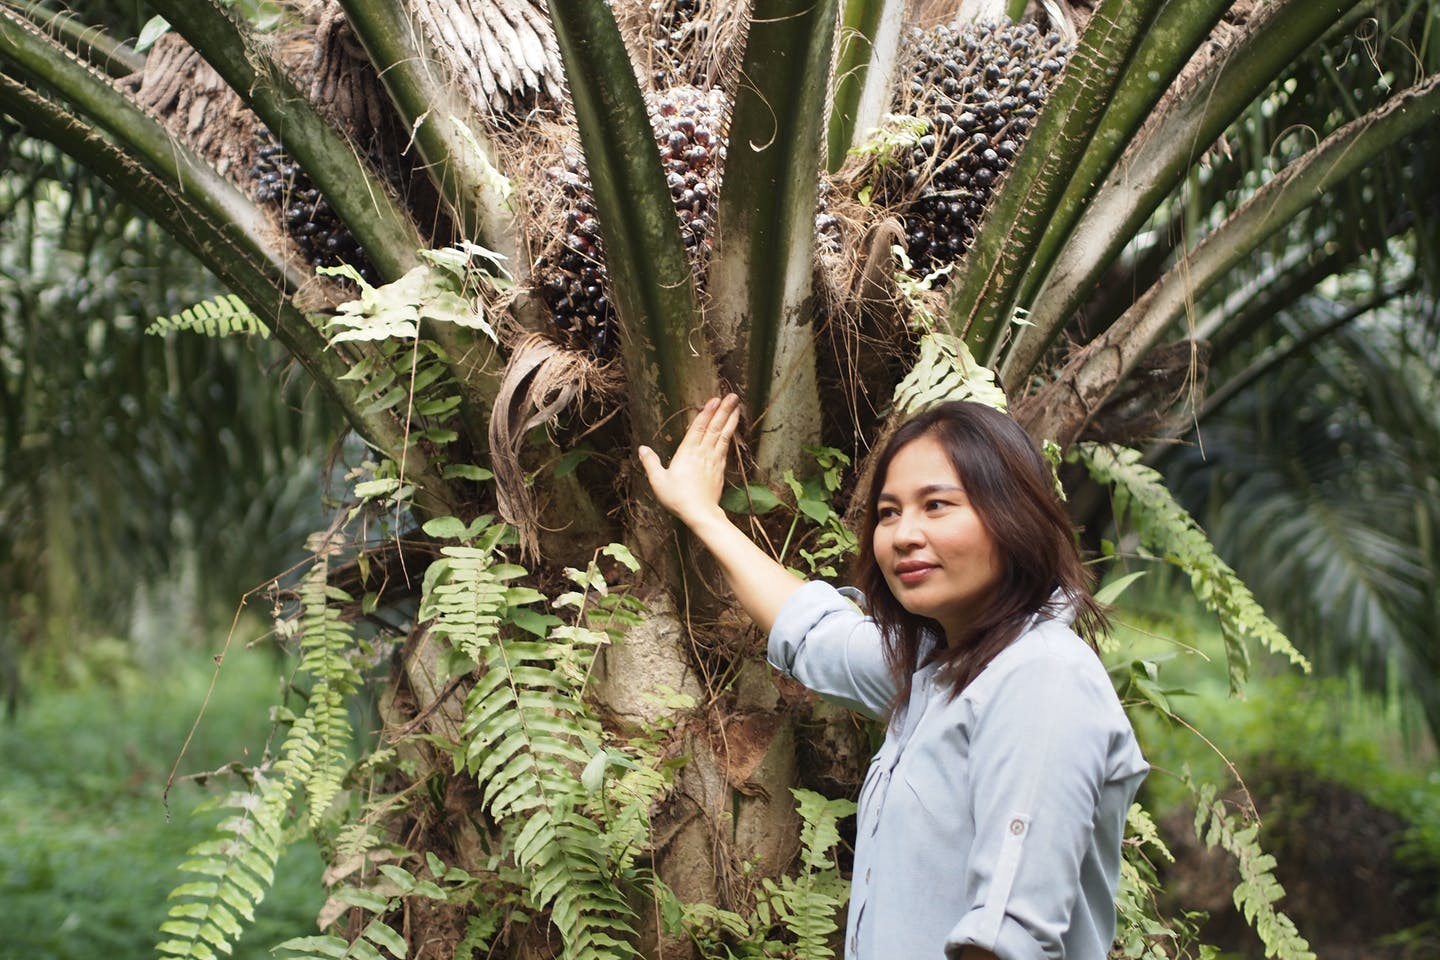 46 year-old former bank manager and mother of two Pornsiri Raknukul now runs her own RSPO-certified palm oil plantation in Southern Thailand. Image: RSPO